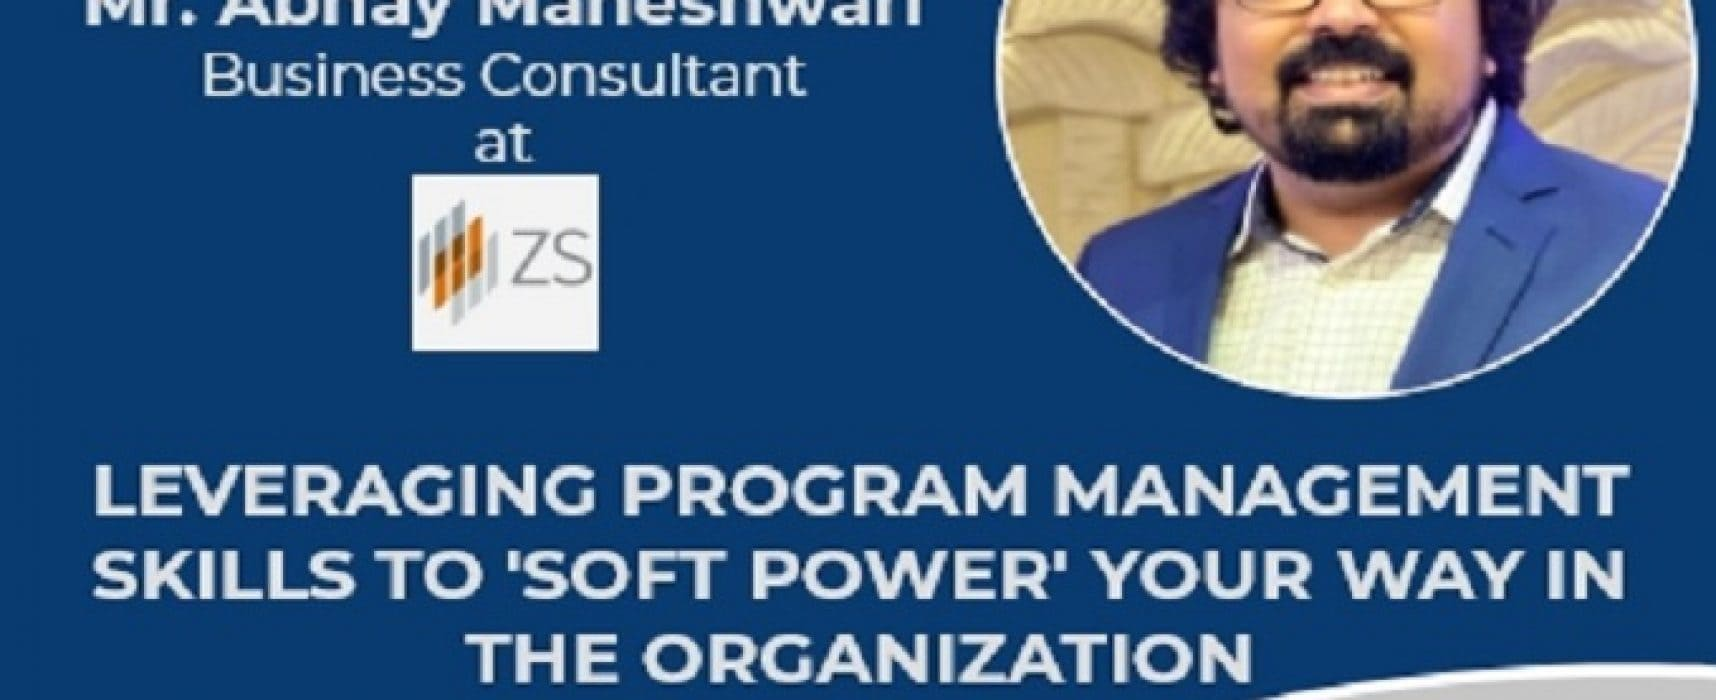 Leveraging program management skills to 'soft power' your way in the organization.